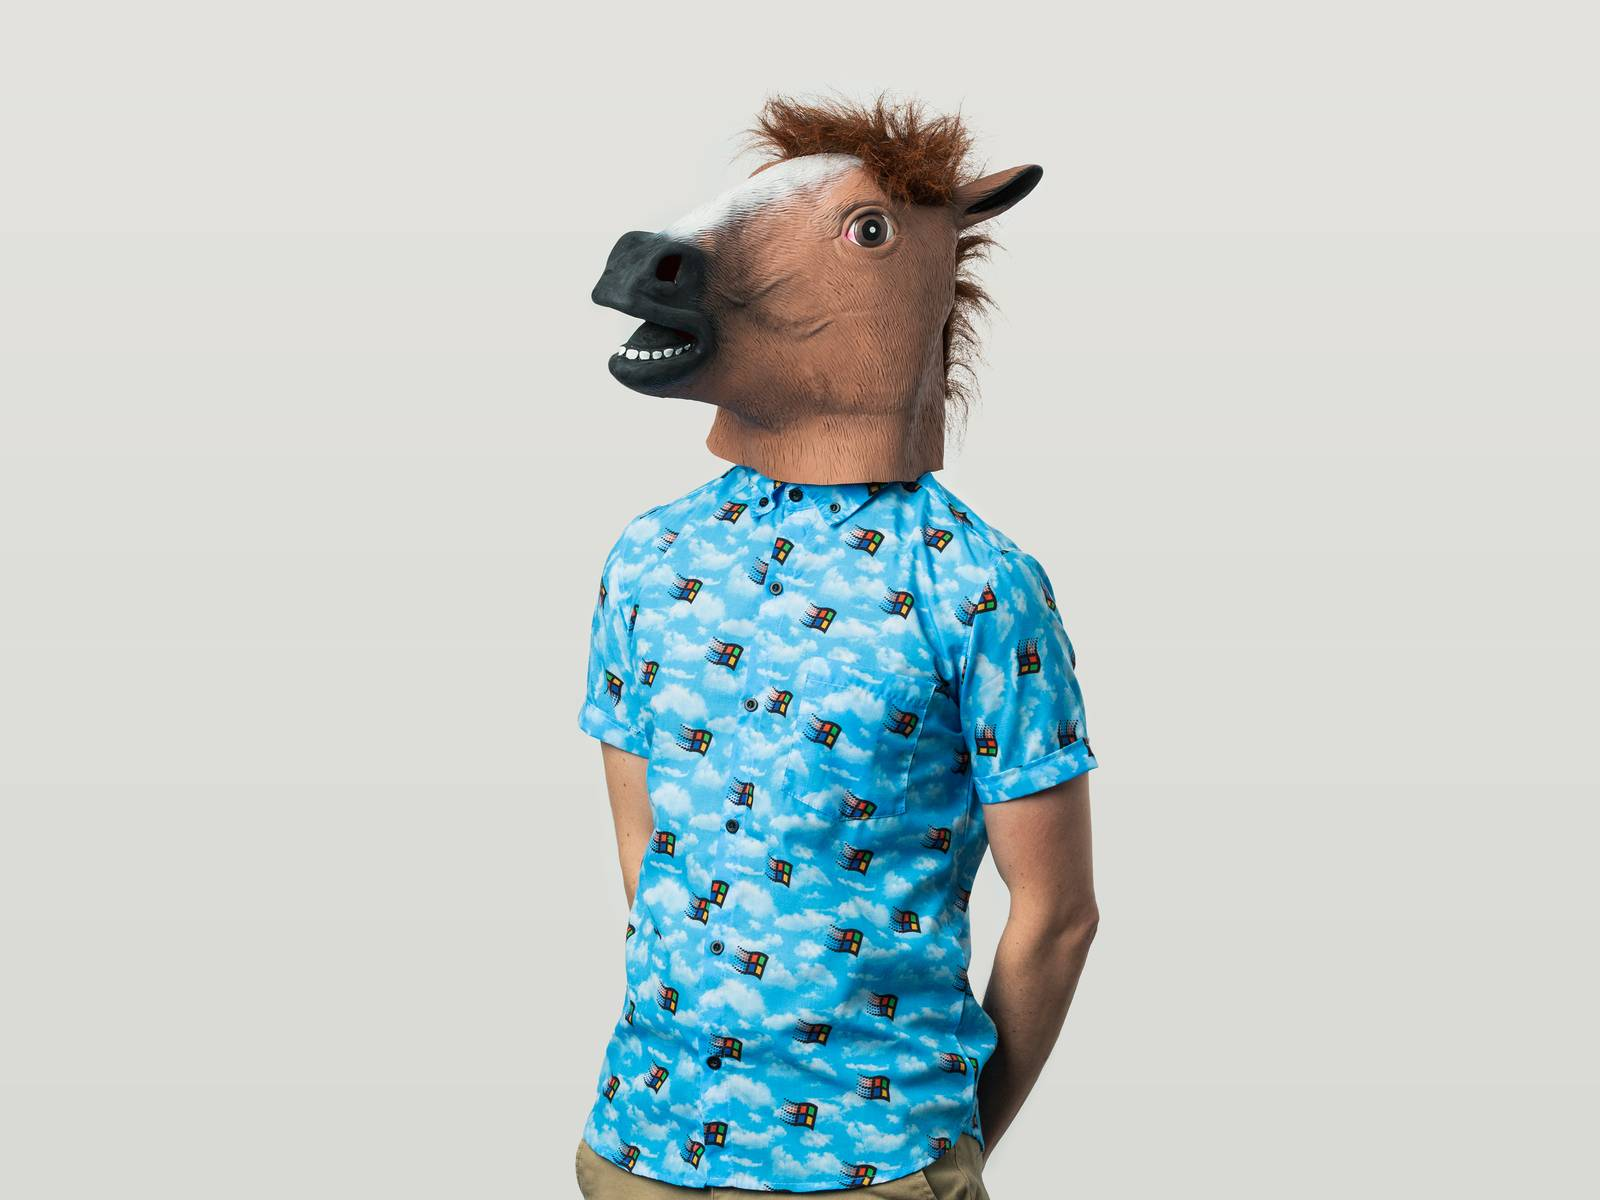 Liam wearing a horse head mask